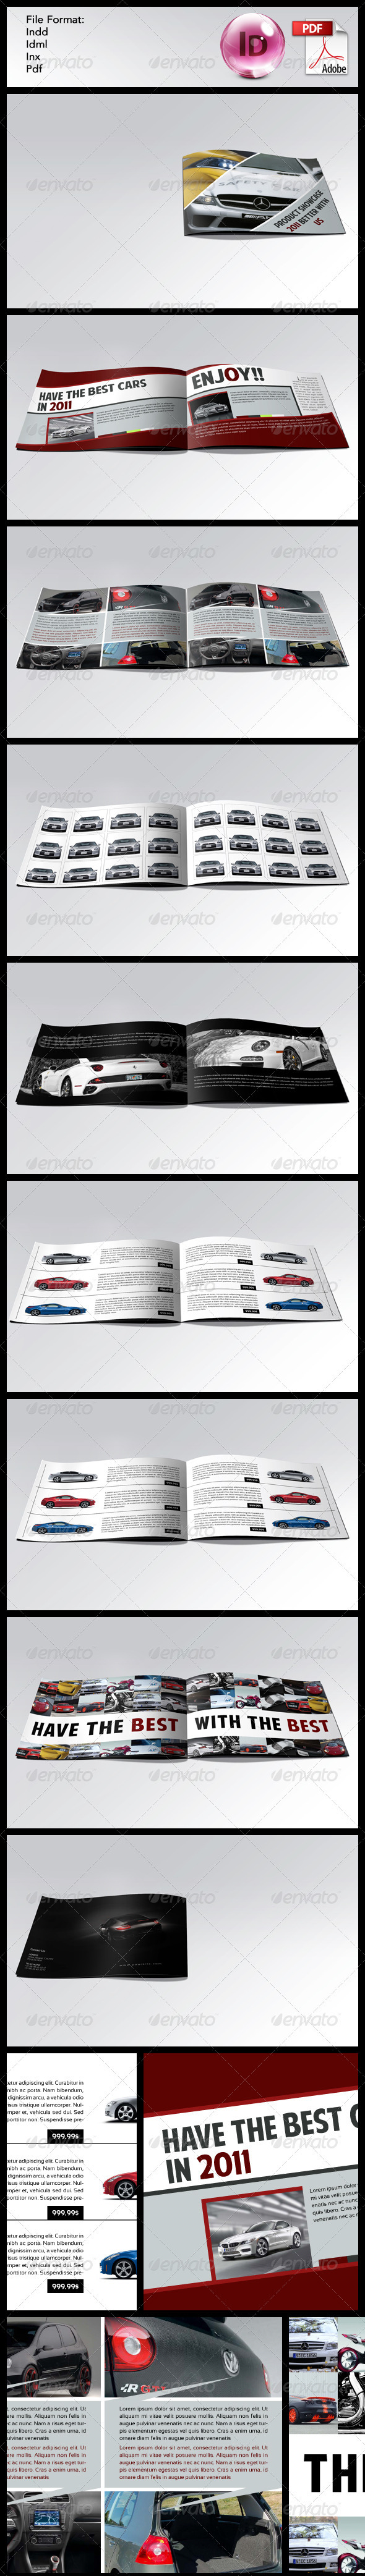 Product Showcase - Catalogs Brochures